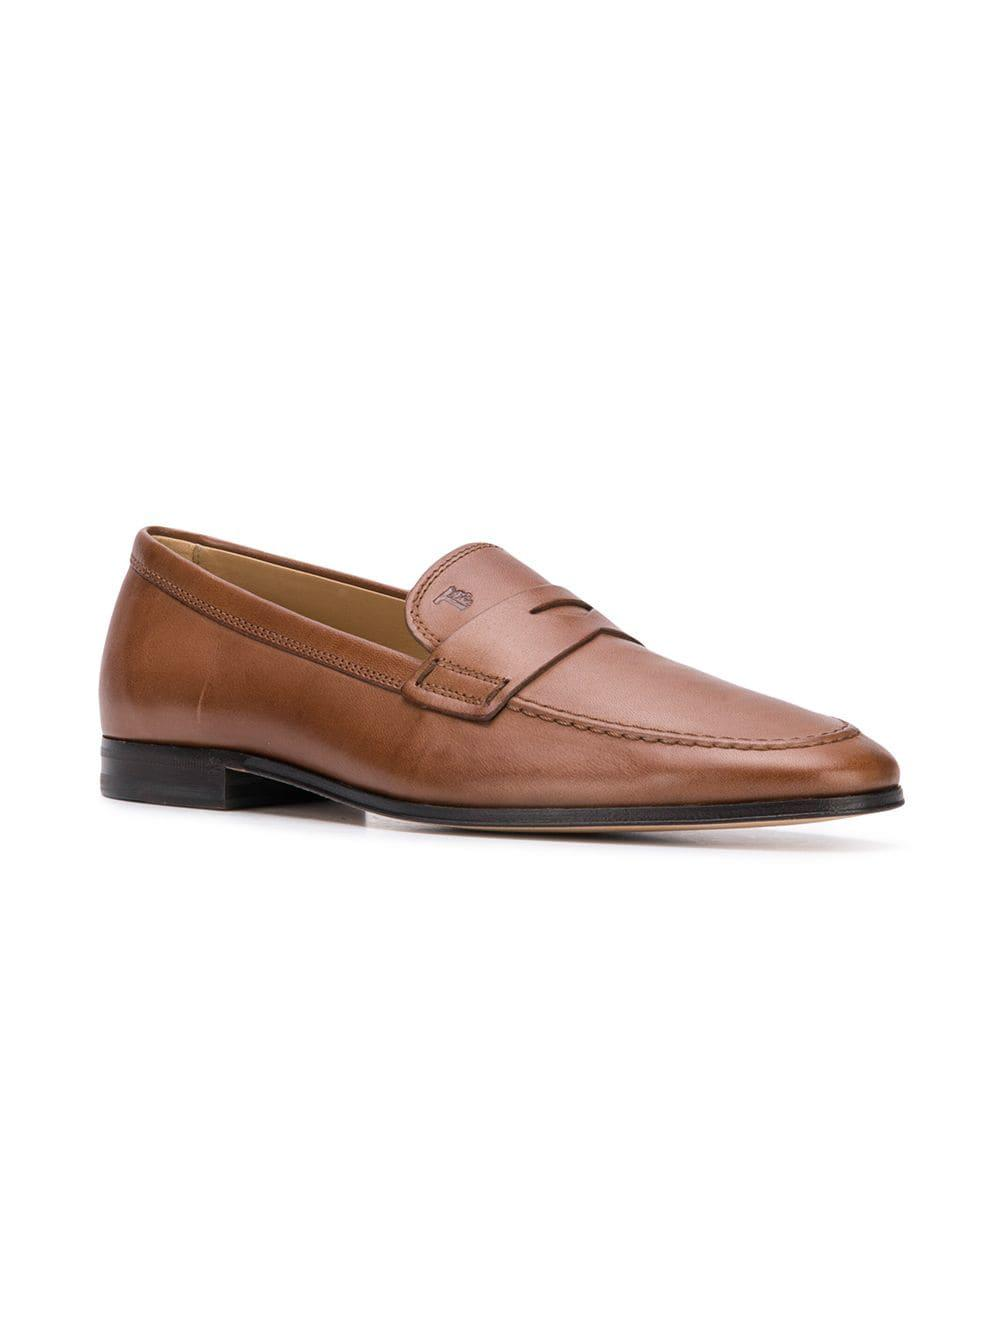 premium selection c6c3f c4df7 tods-Brown-Classic-Slip-on-Loafers.jpeg